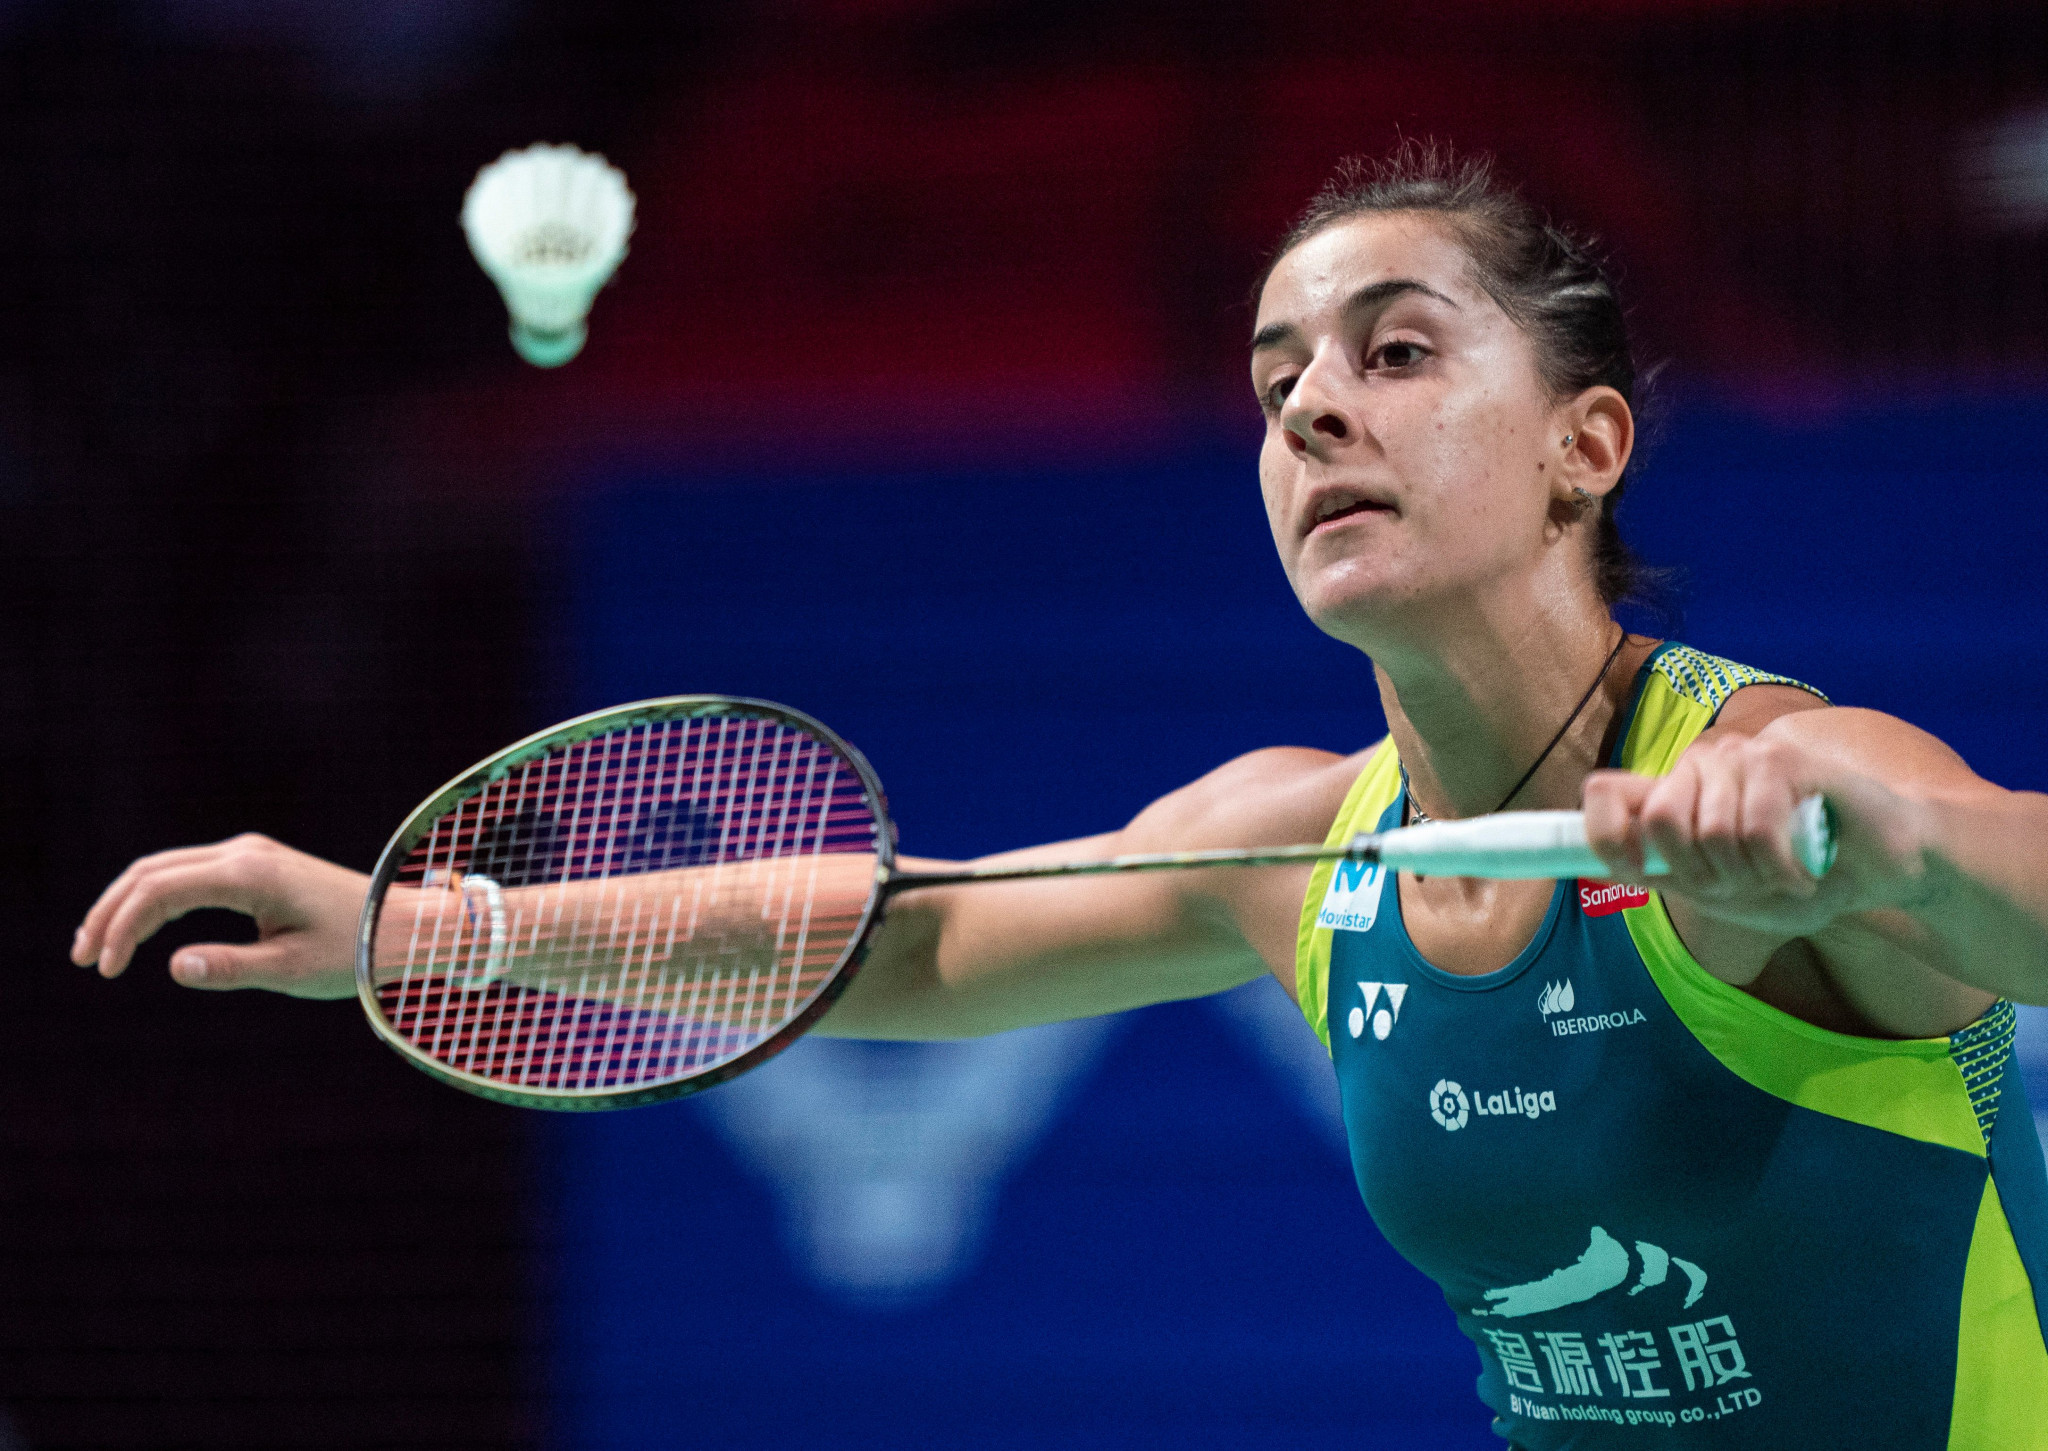 Olympic badminton champion Marín to miss Tokyo 2020 due to injury